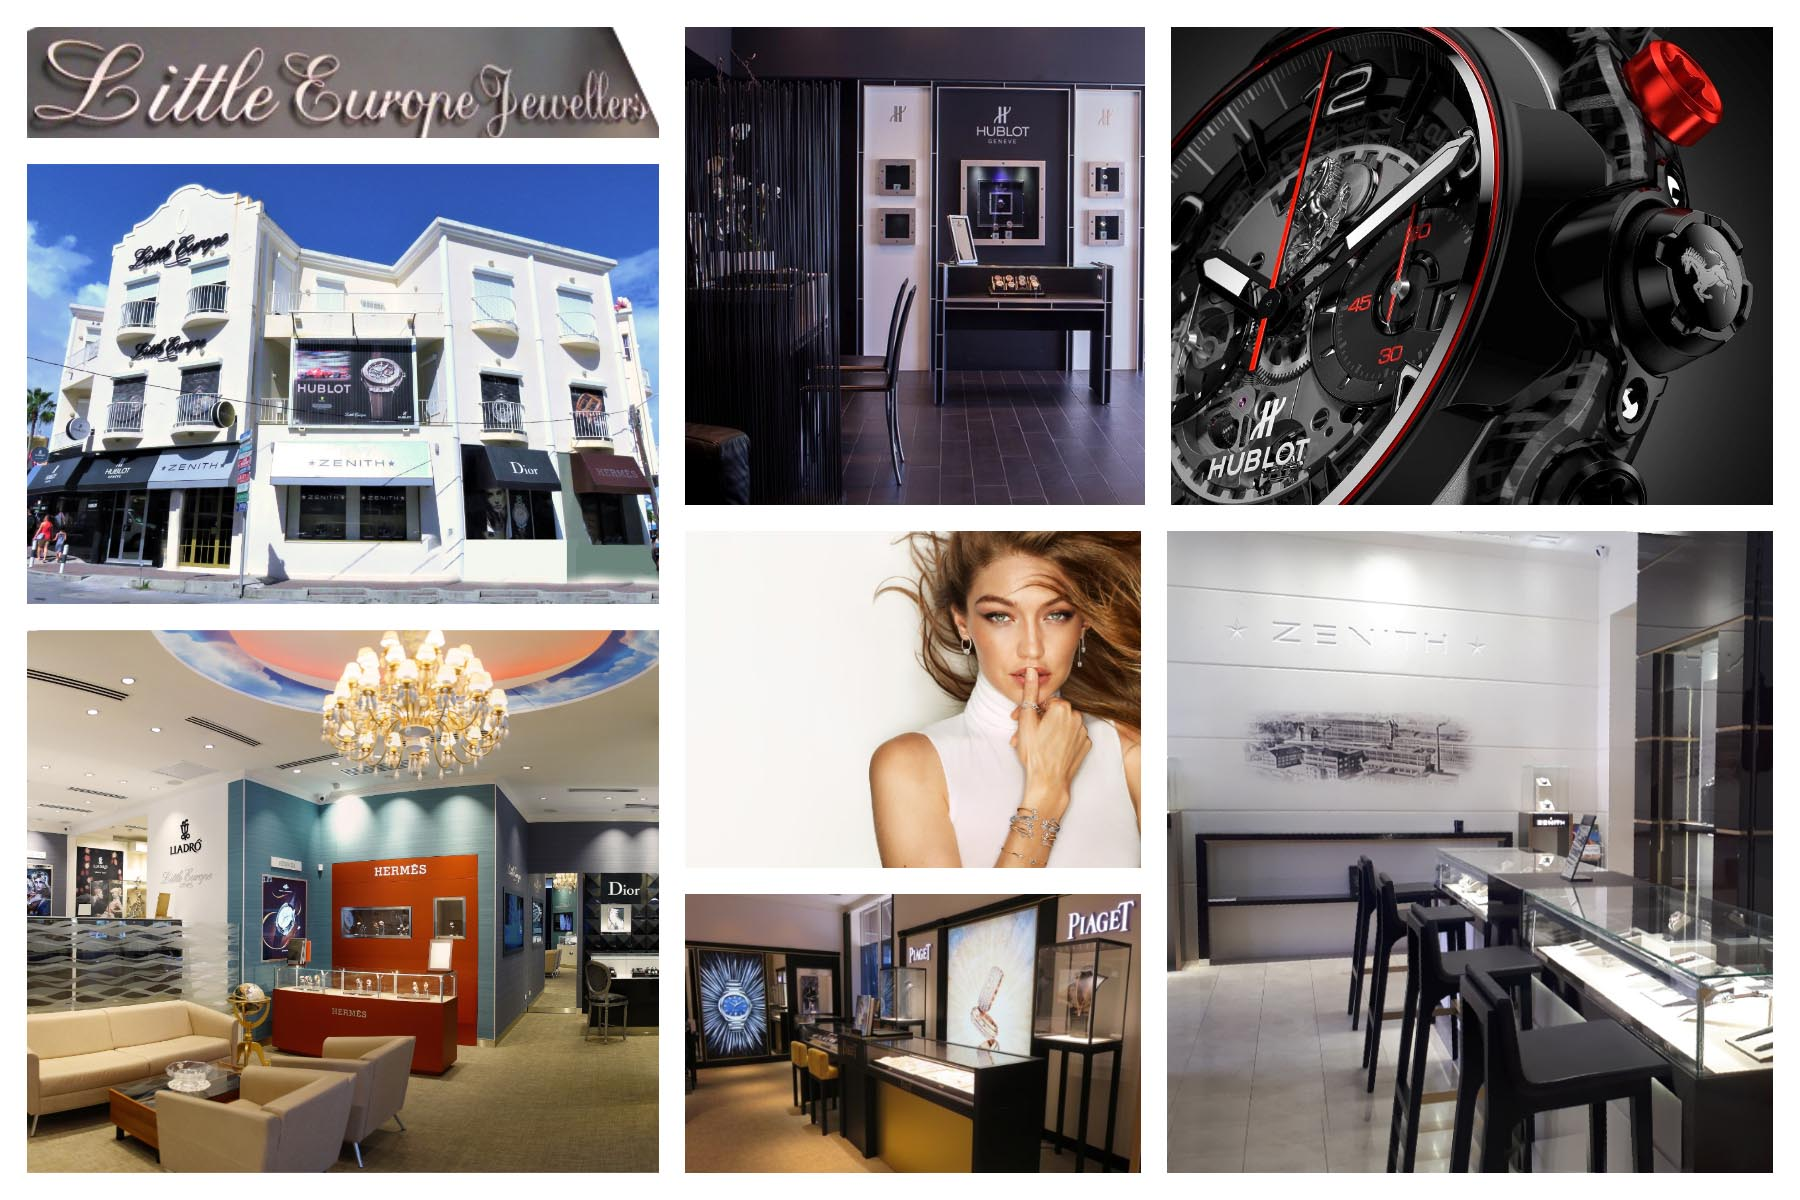 Little Europe St. Maarten - St. Martin - SXM - Products - Jewelry and Watches - Hublot - Zenith - Messika - Piaget - Hermes - Djula - Tous